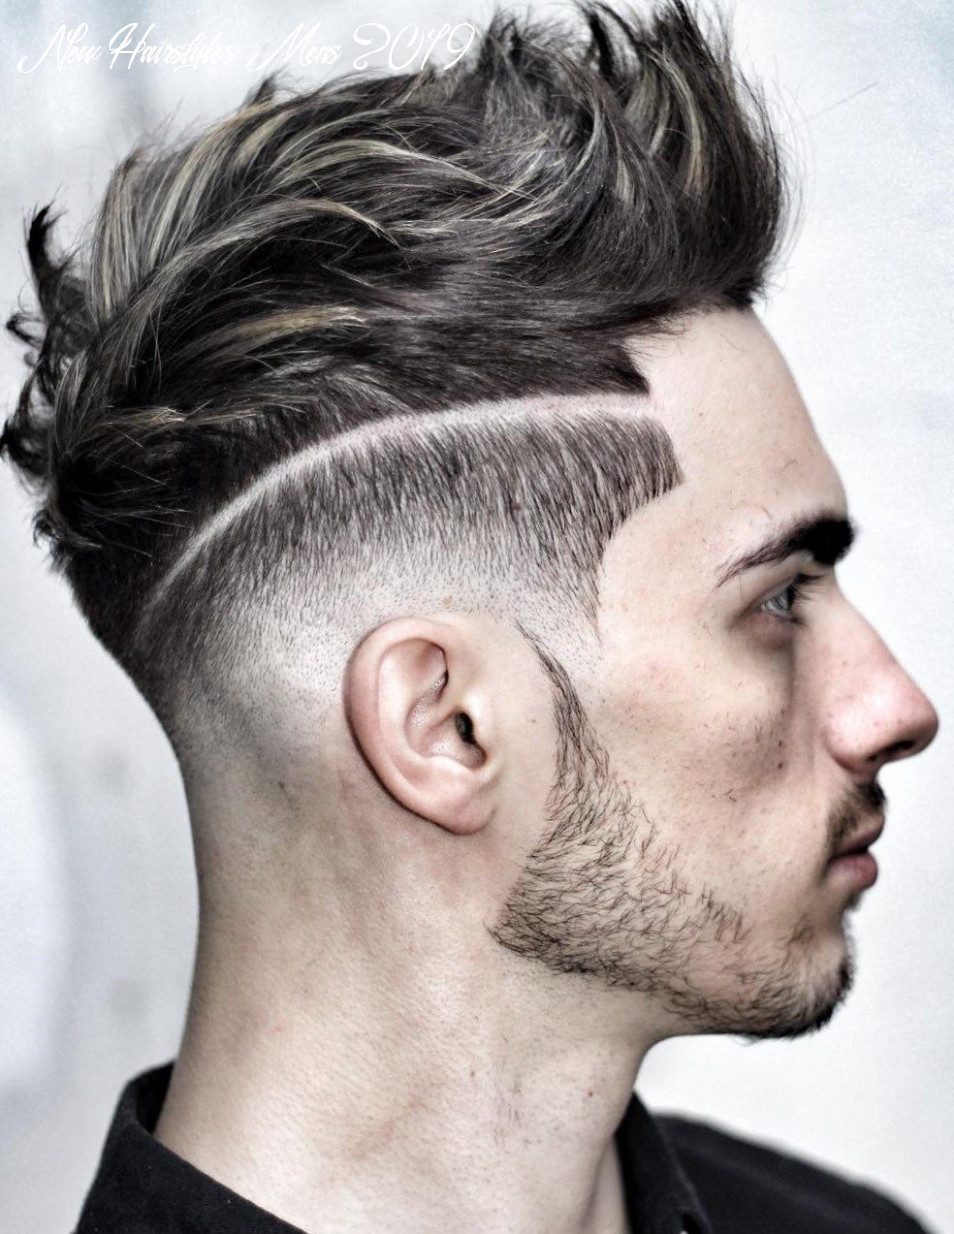 12 new hairstyles for guys new hairstyles mens 2019